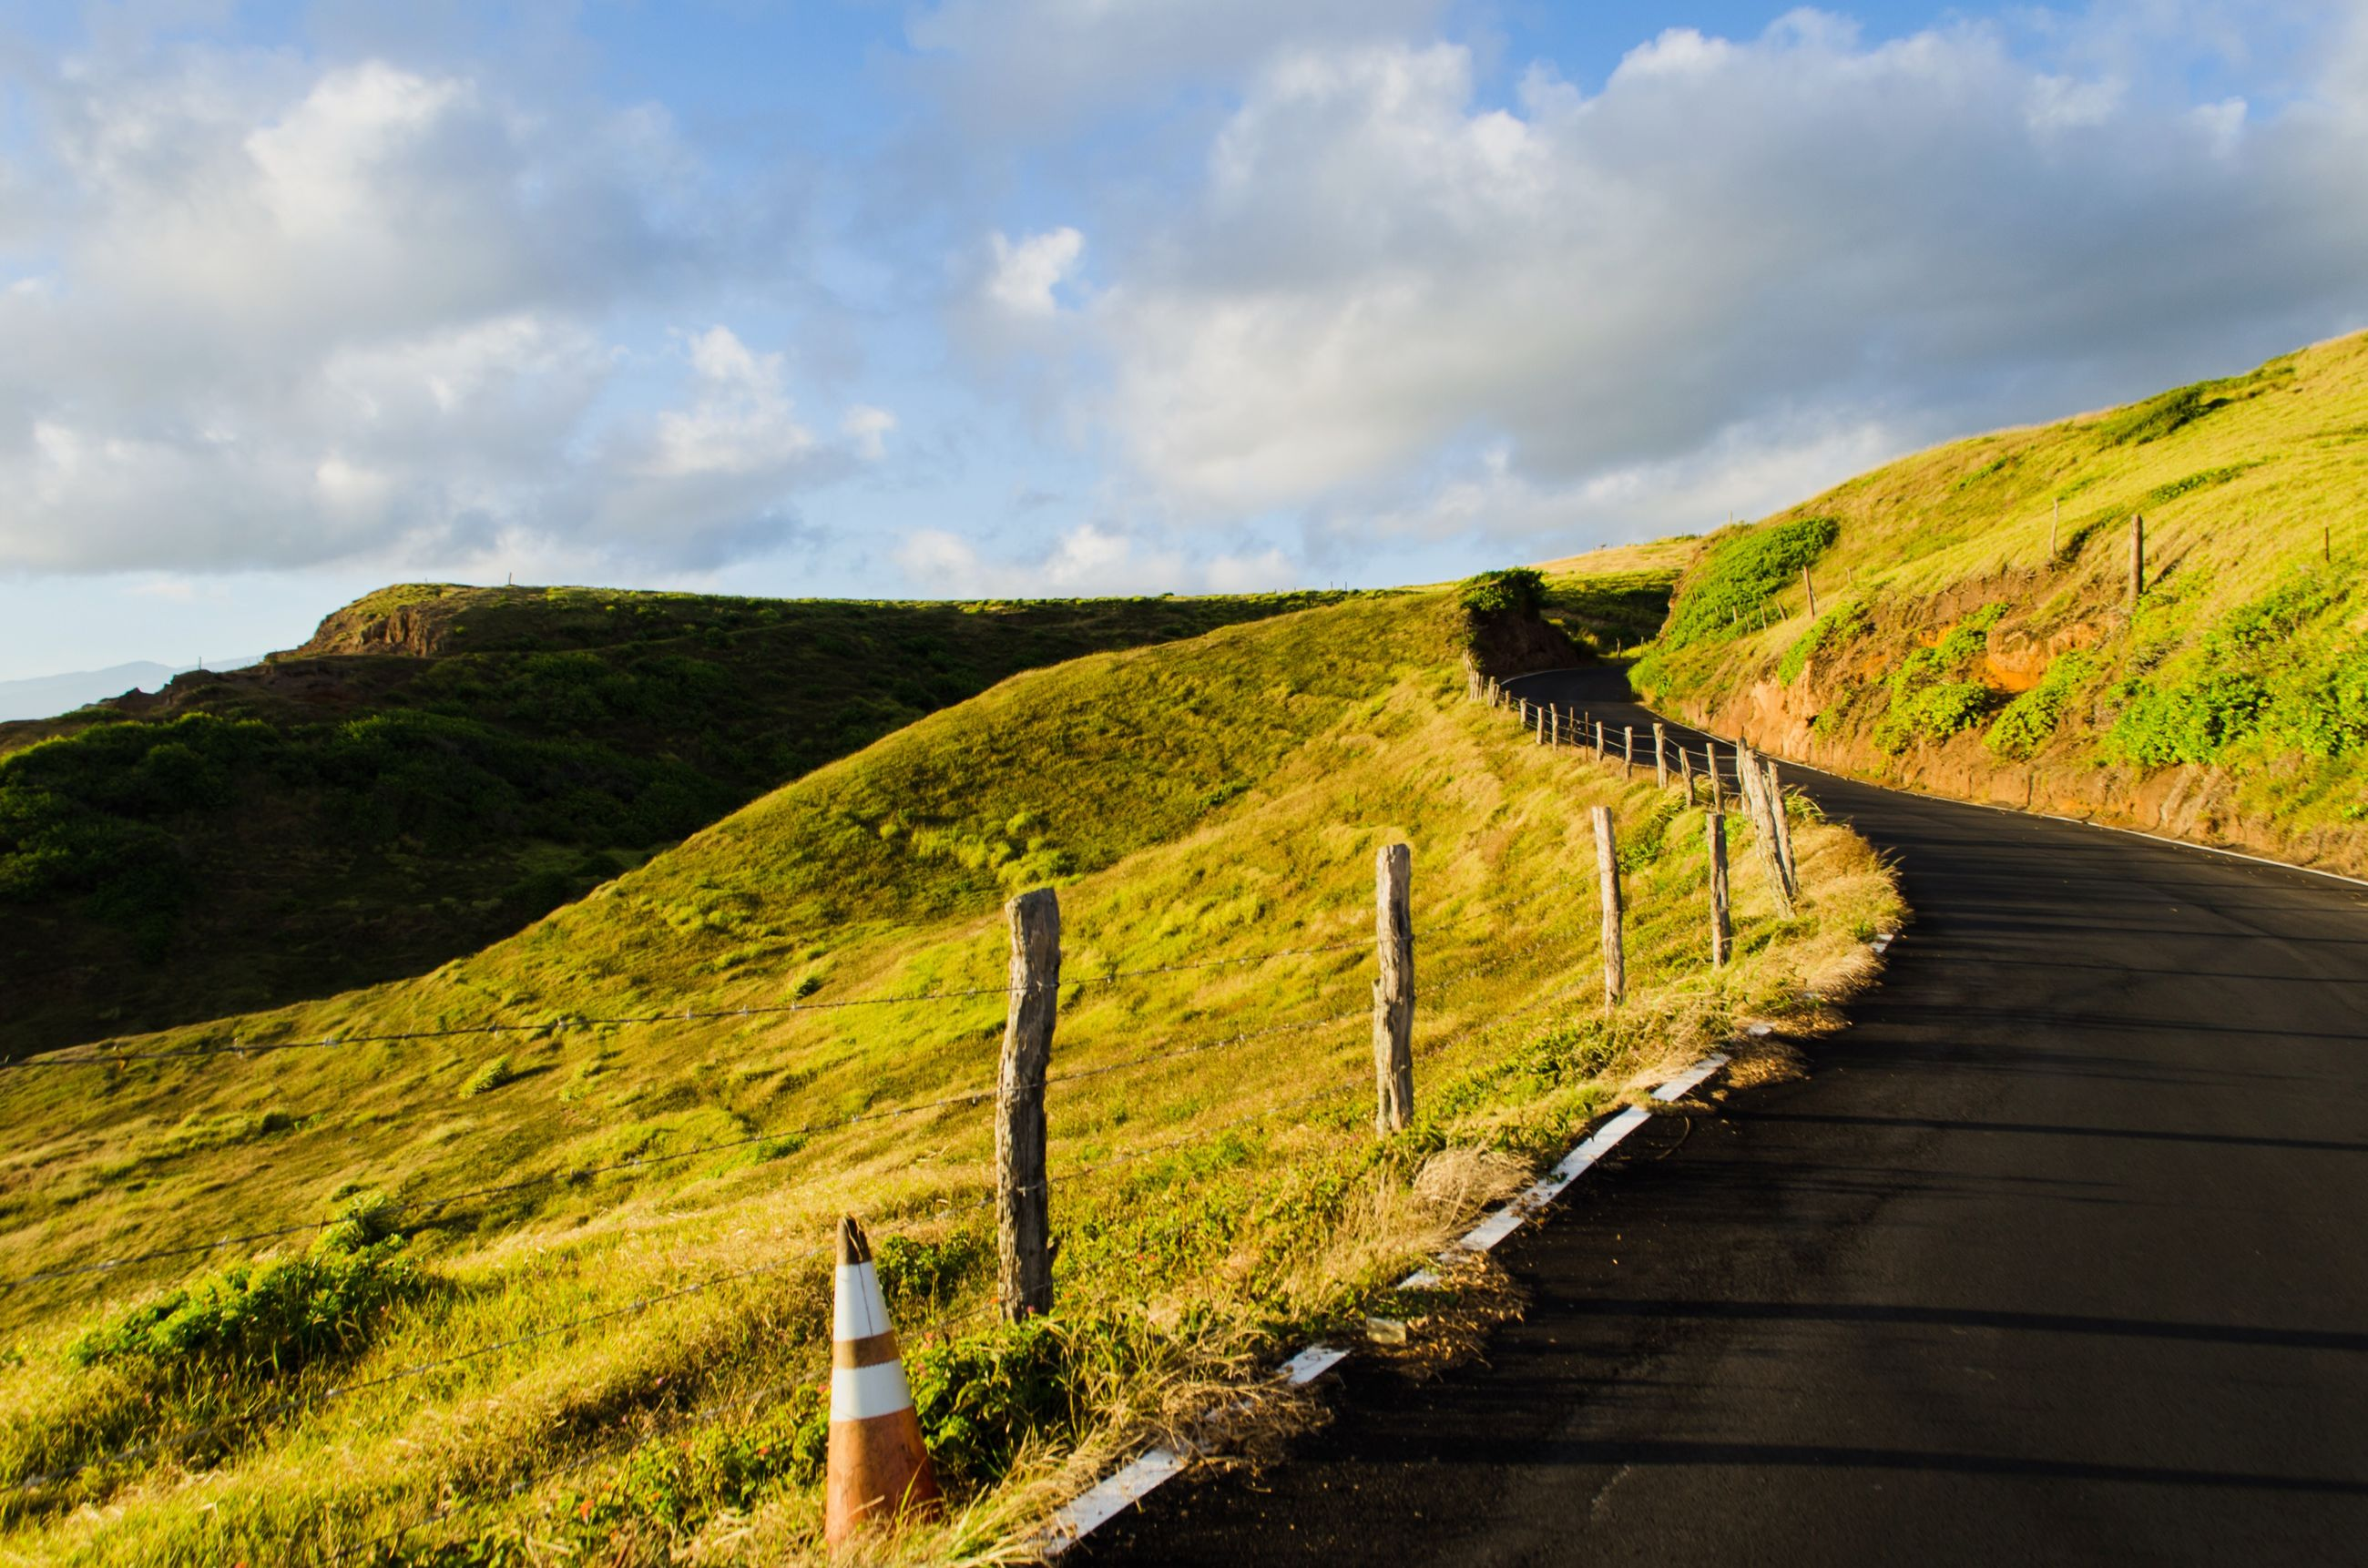 the way forward, sky, tranquil scene, tranquility, landscape, cloud - sky, scenics, grass, mountain, beauty in nature, nature, diminishing perspective, road, green color, cloud, footpath, fence, railing, cloudy, vanishing point